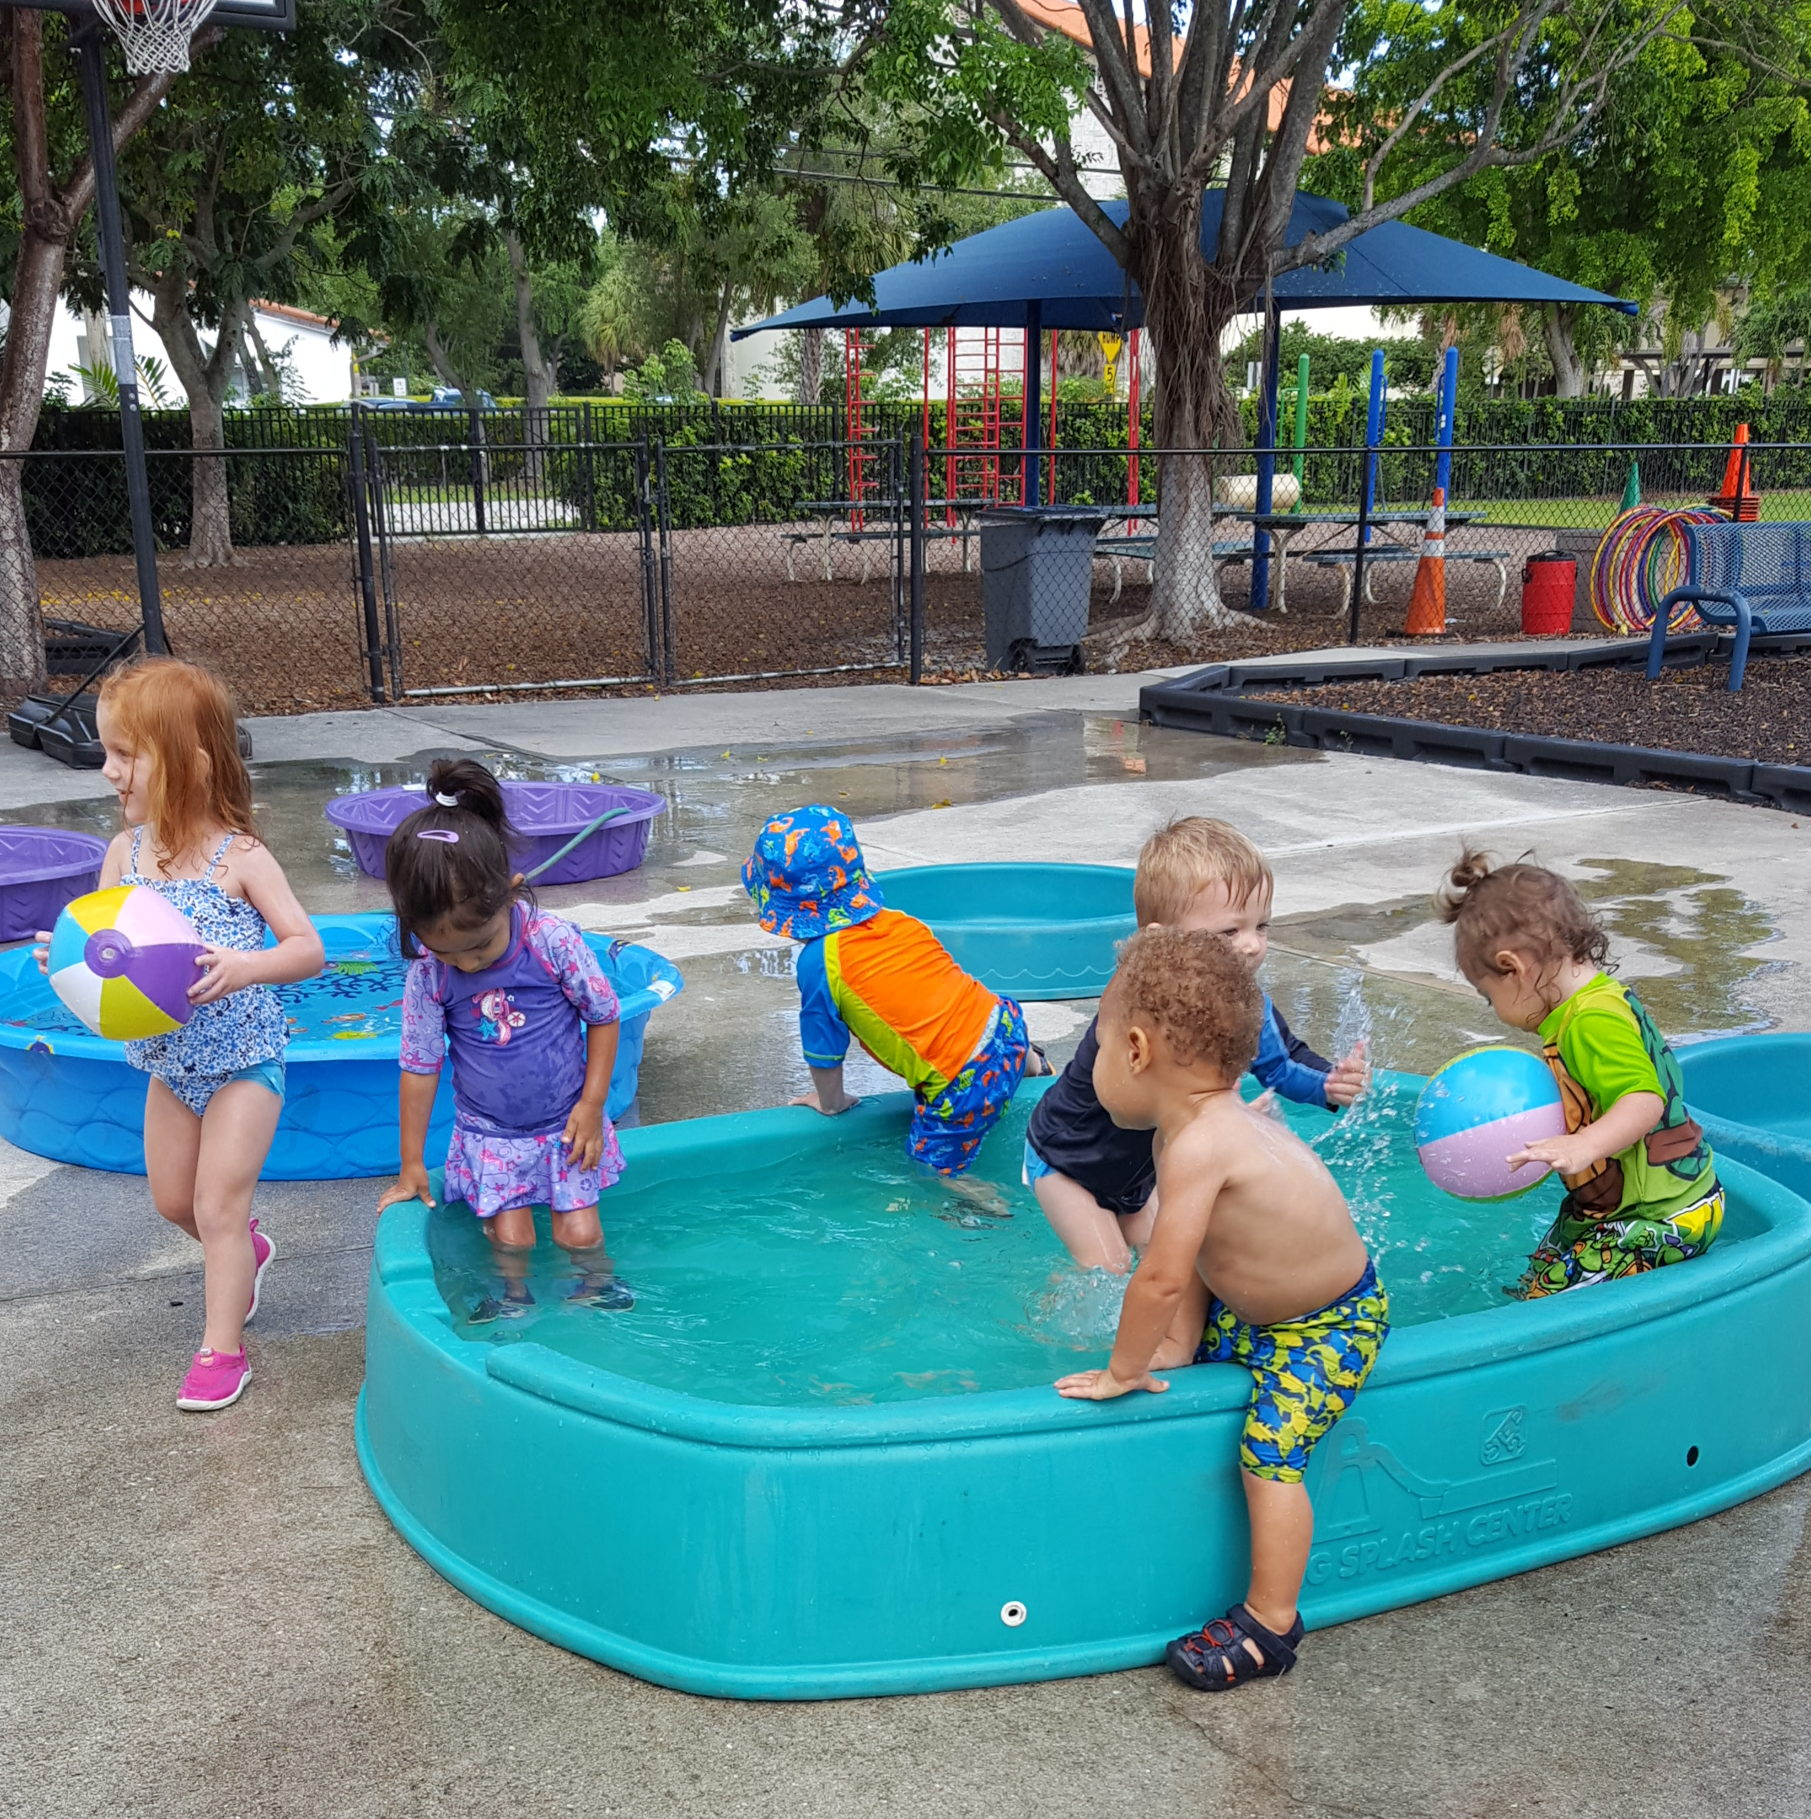 Summer-Camp-Wk-1-18mo-1stSplash-Day3-e1465225471477